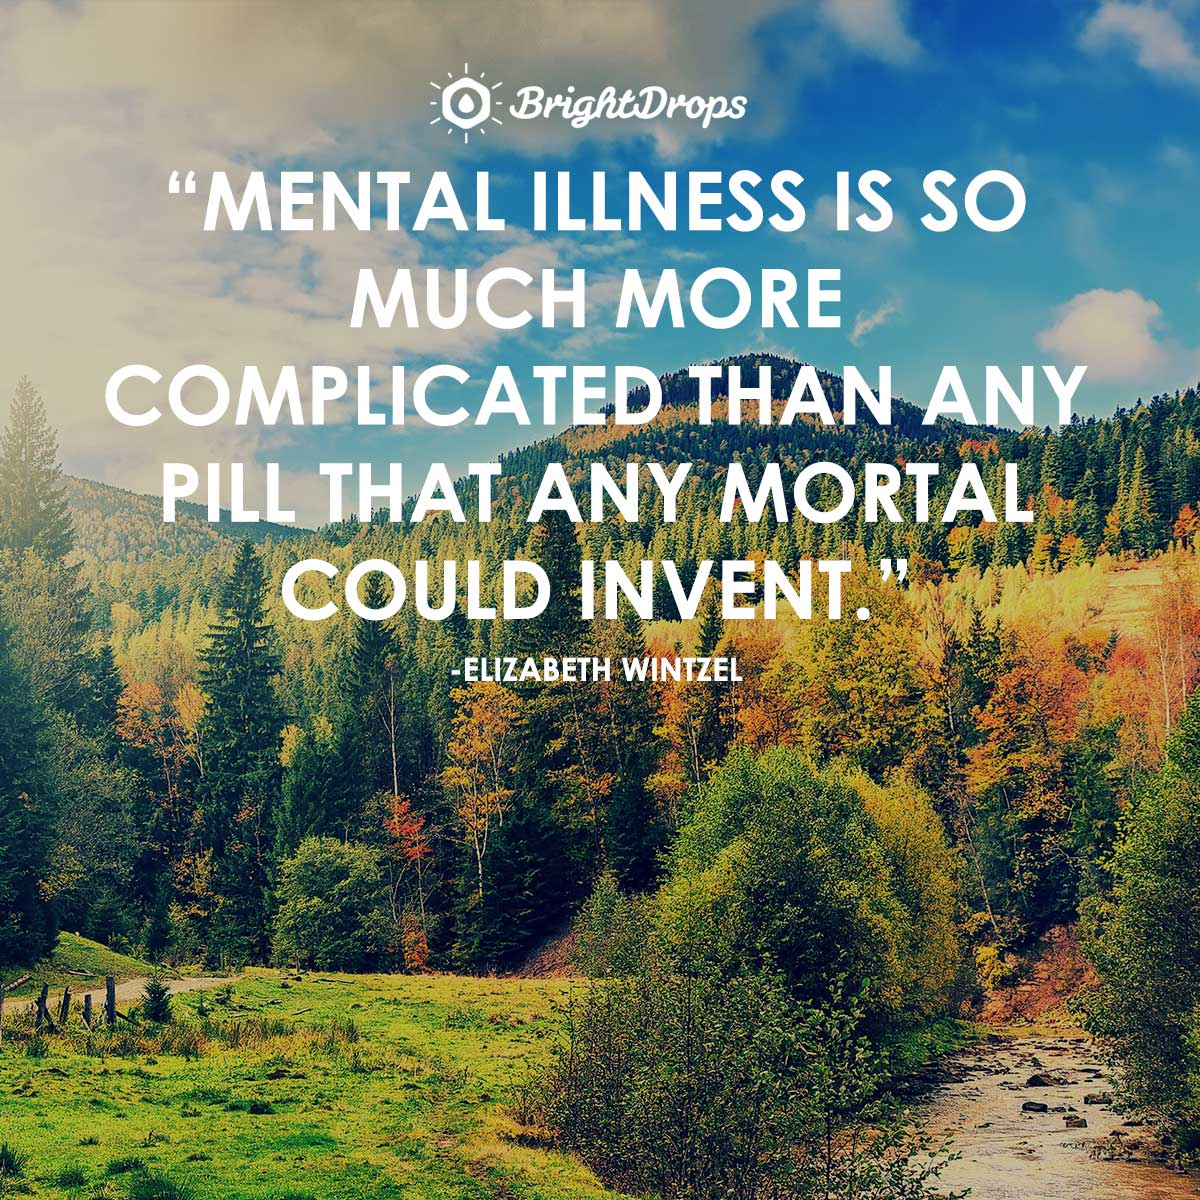 Mental illness is so much more complicated than any pill that any mortal could invent. -Elizabeth Wintzel